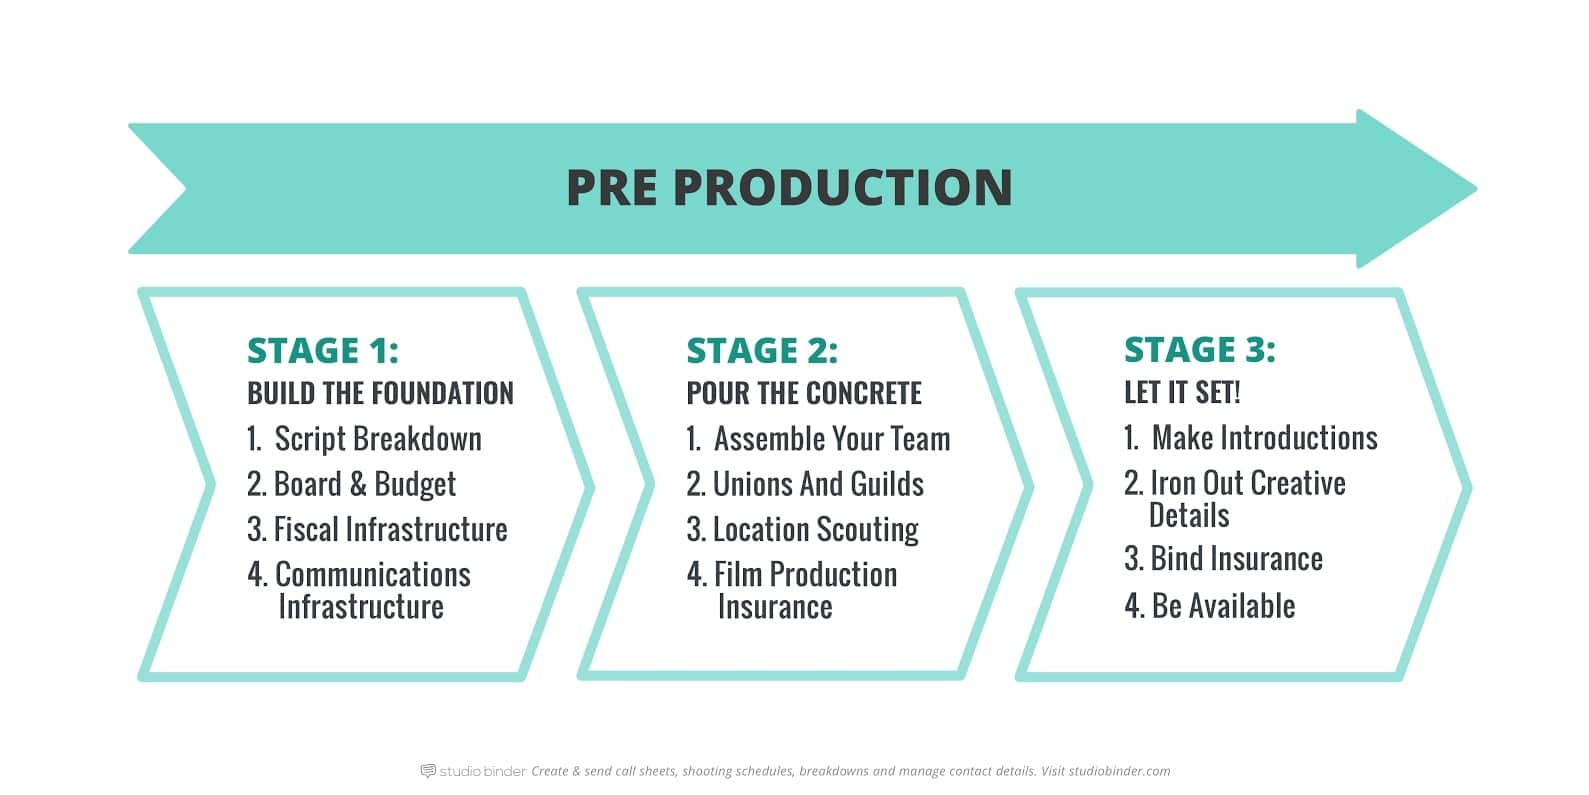 The-Pre-Production-Process-Explained-Infographic-StudioBinder